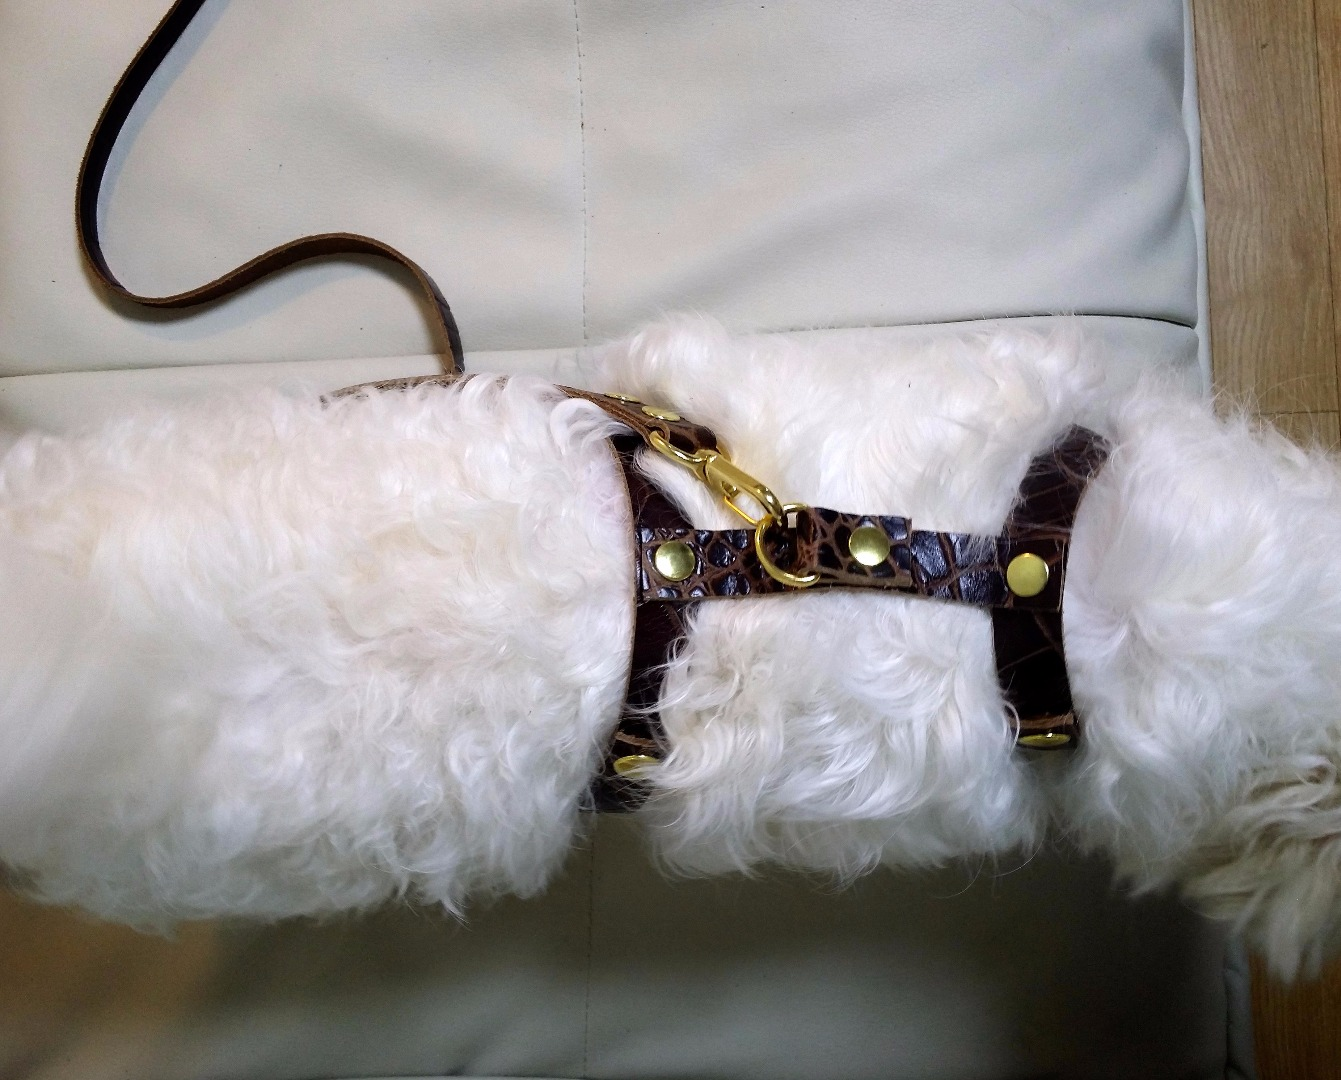 Picture of Leather Dog Harness & Strap! 1 HOUR!